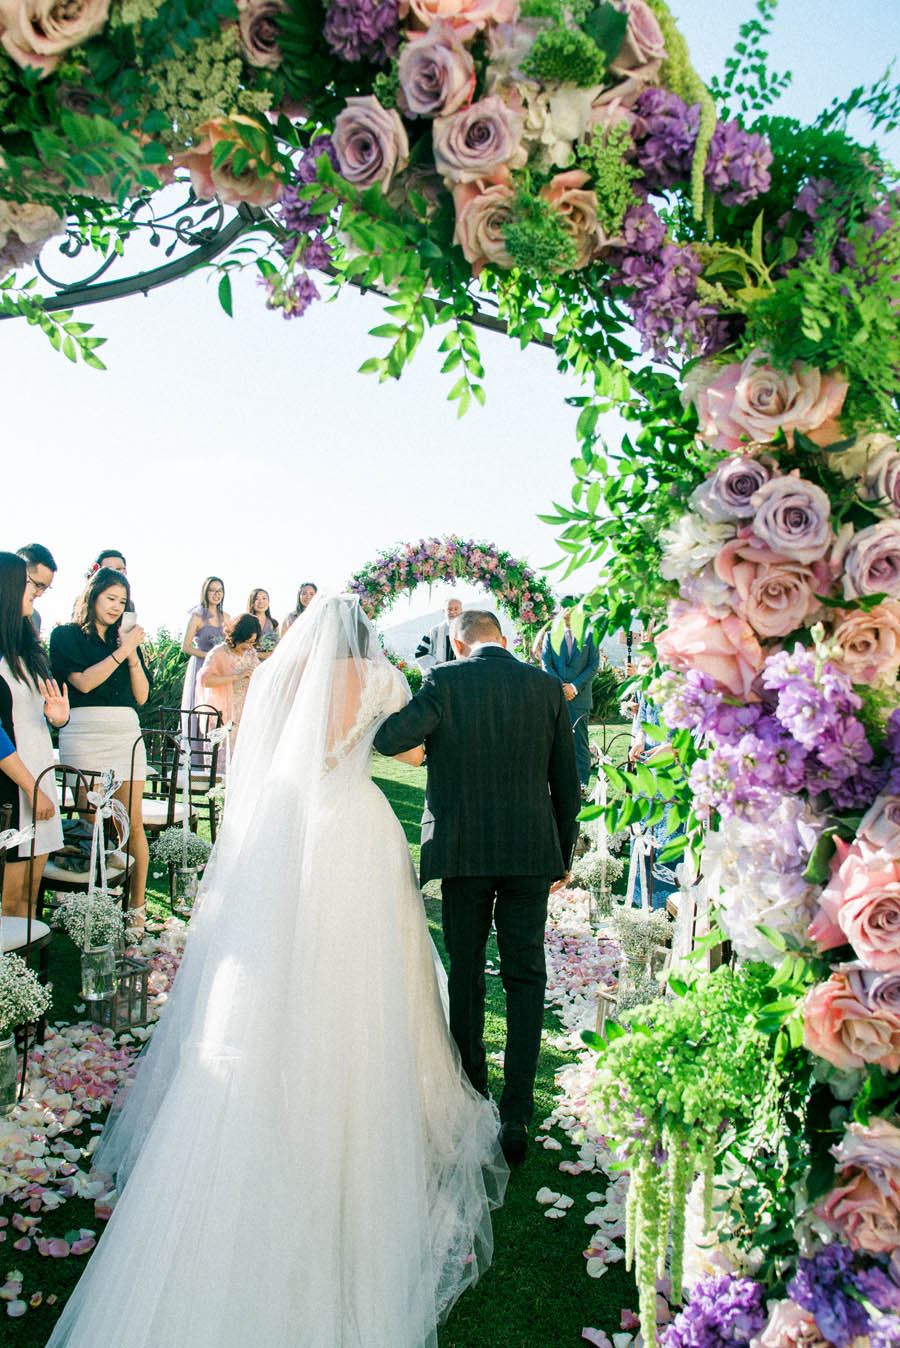 Outdoor-Wedding-Arch.jpg